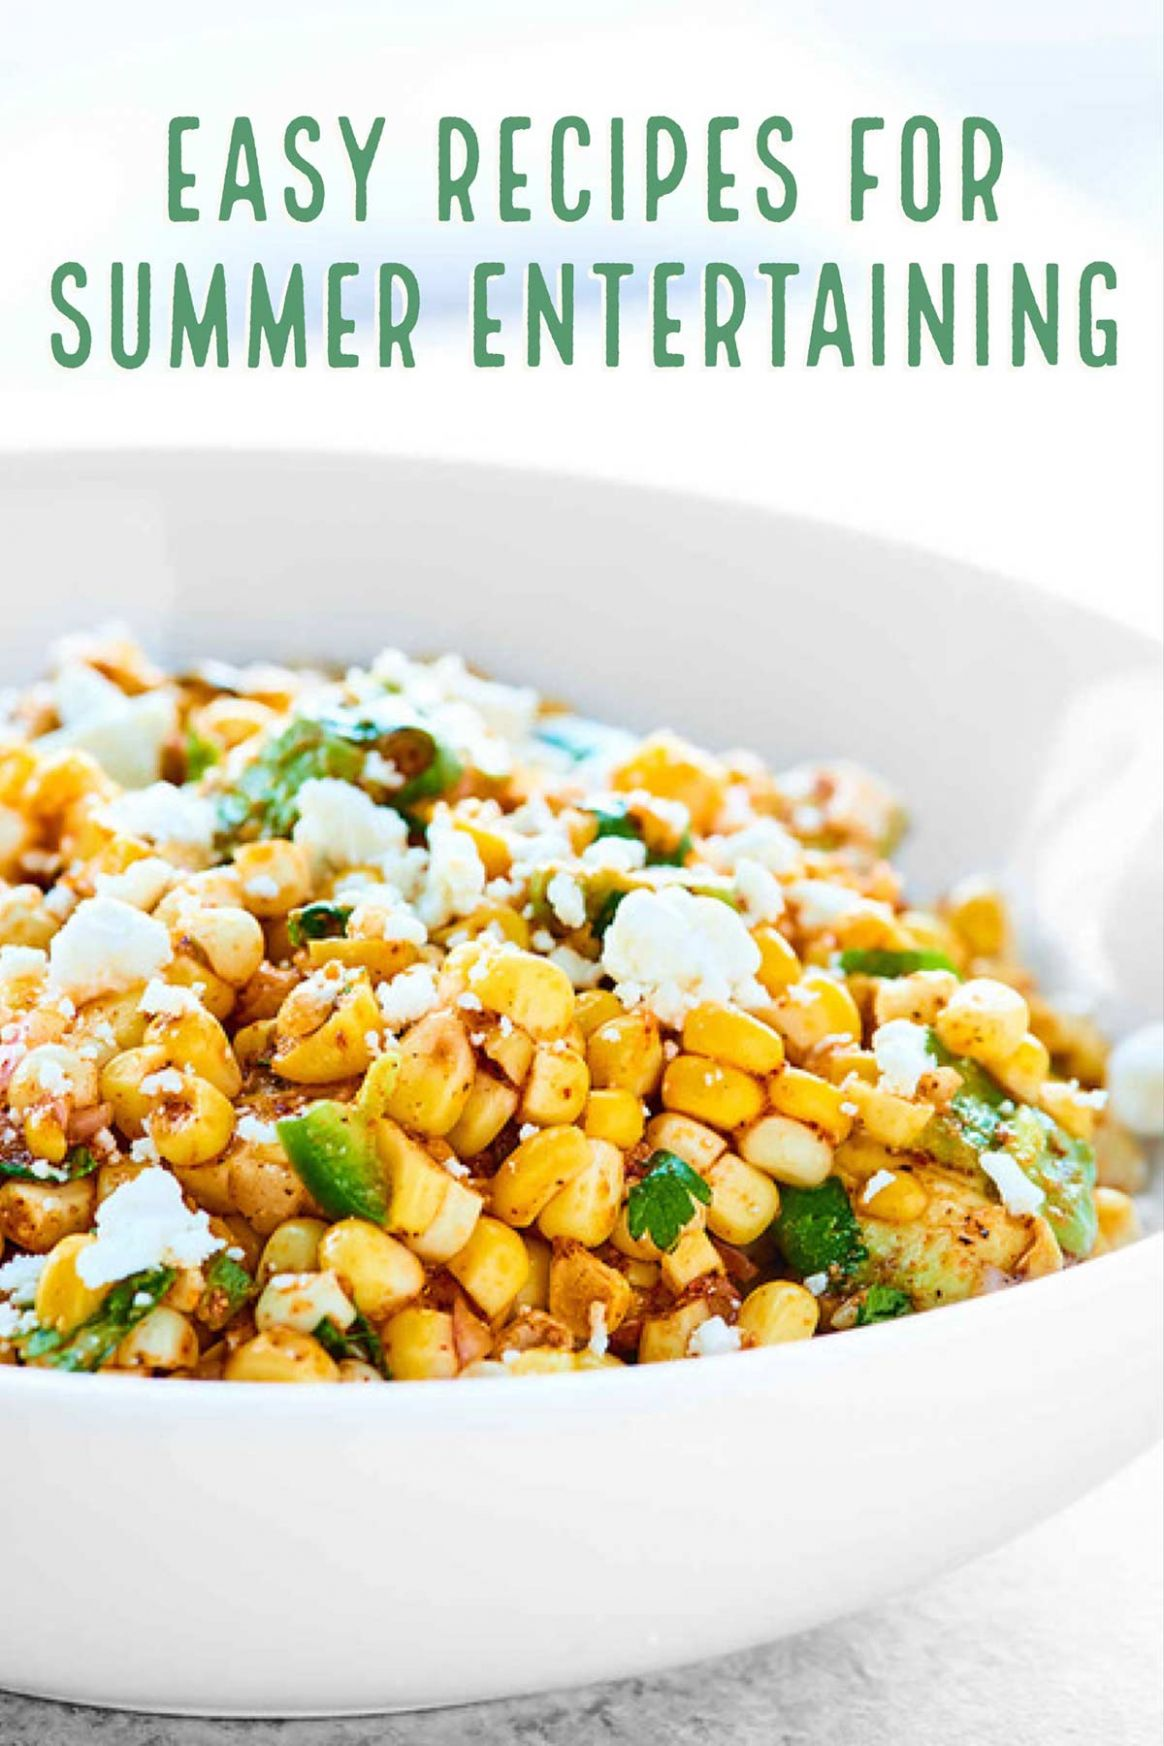 Easy Recipes for Summer Entertaining - Show Me the Yummy - Recipes Summer Entertaining